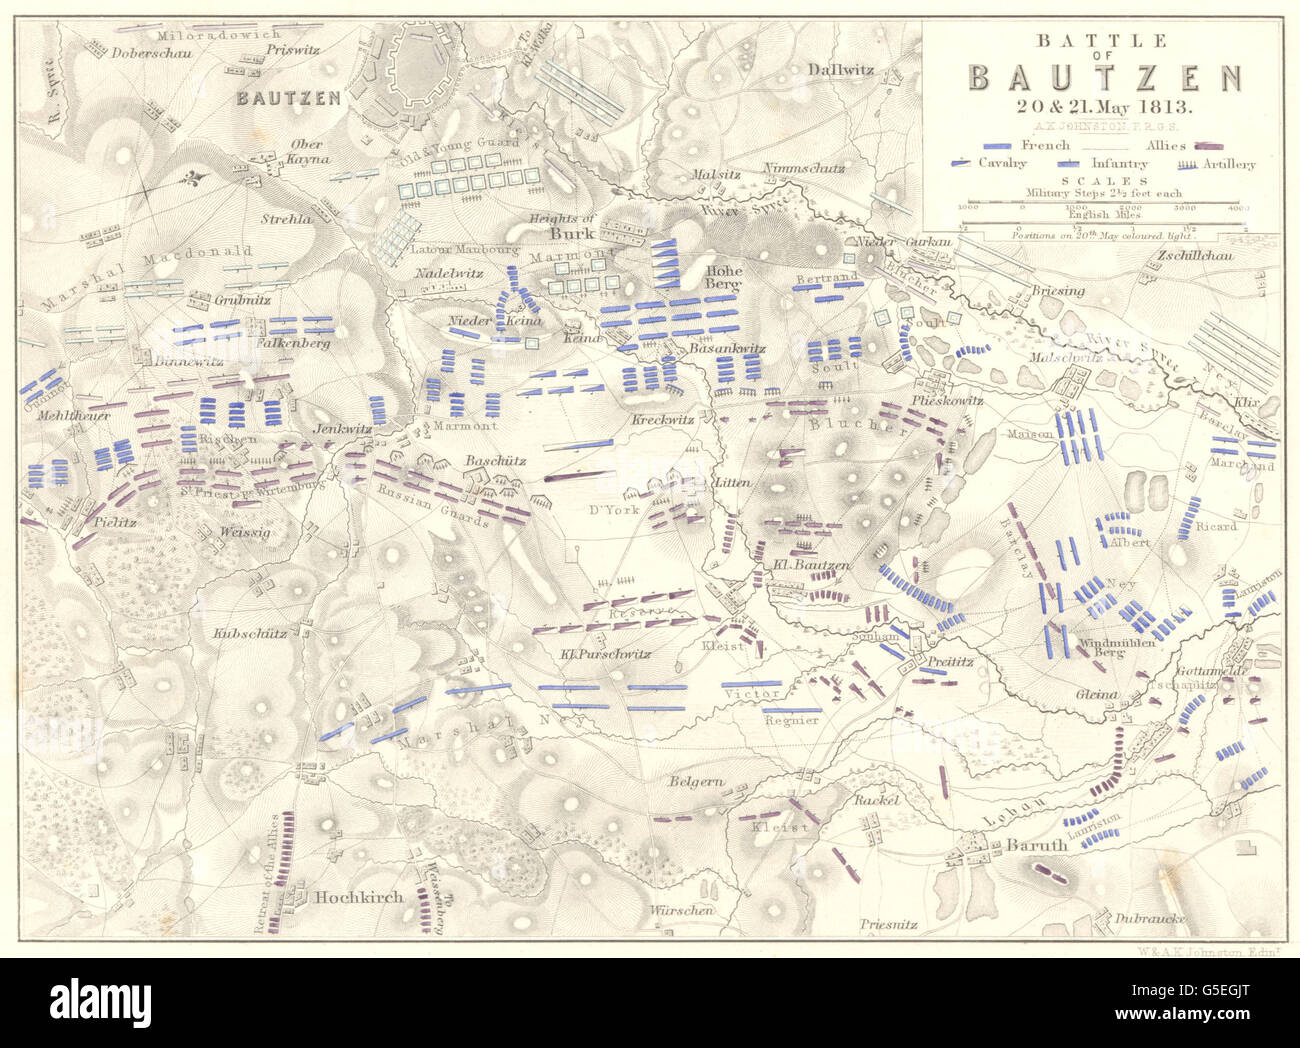 Battle Of Bautzen 20th And 21st May 1813 Germany